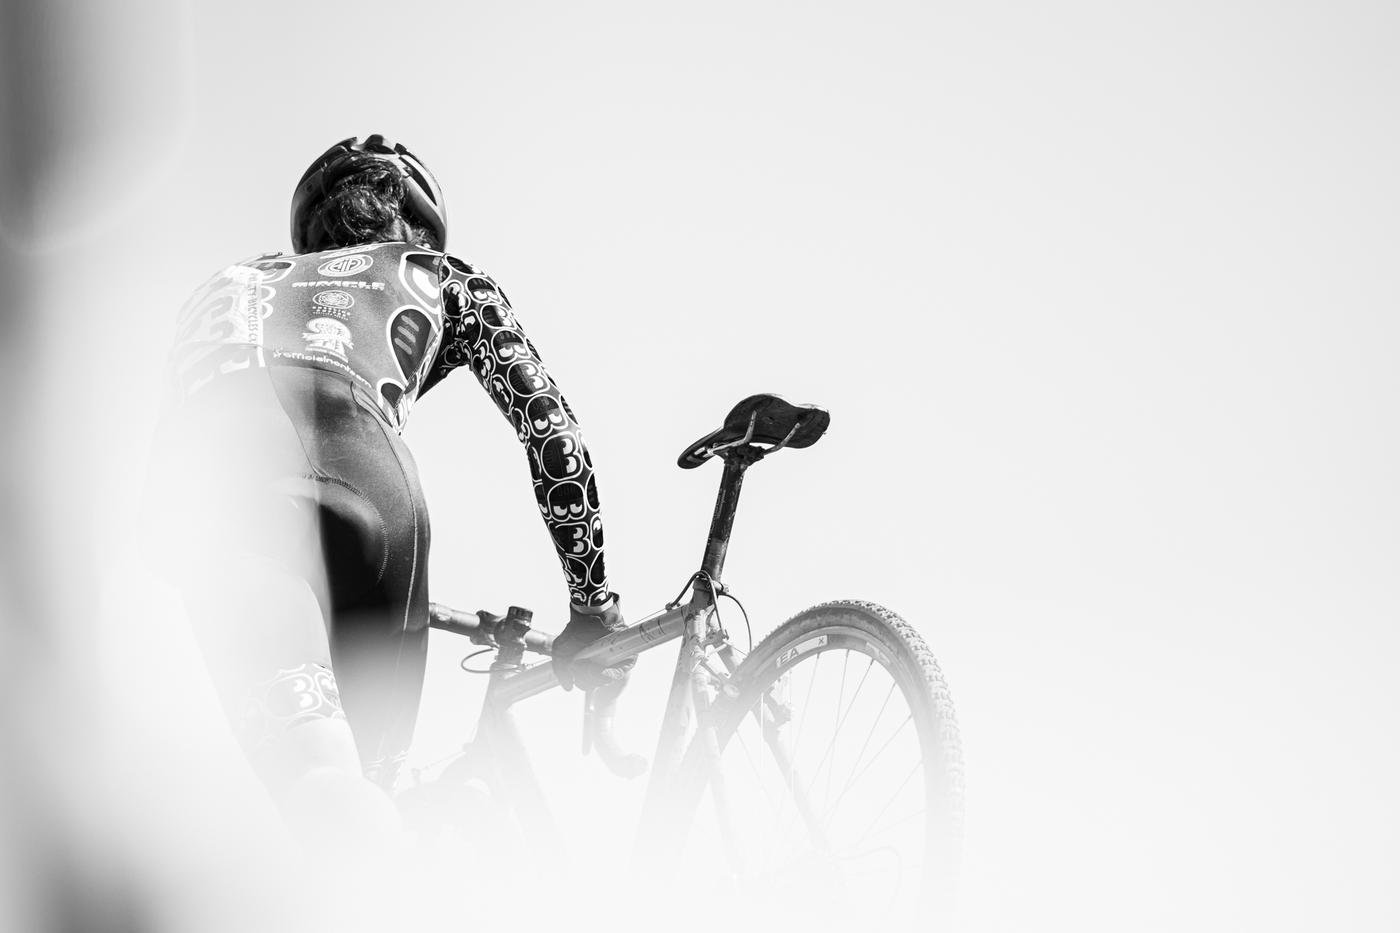 A Digital Preview – Of Crank & Chain: Cyclocross